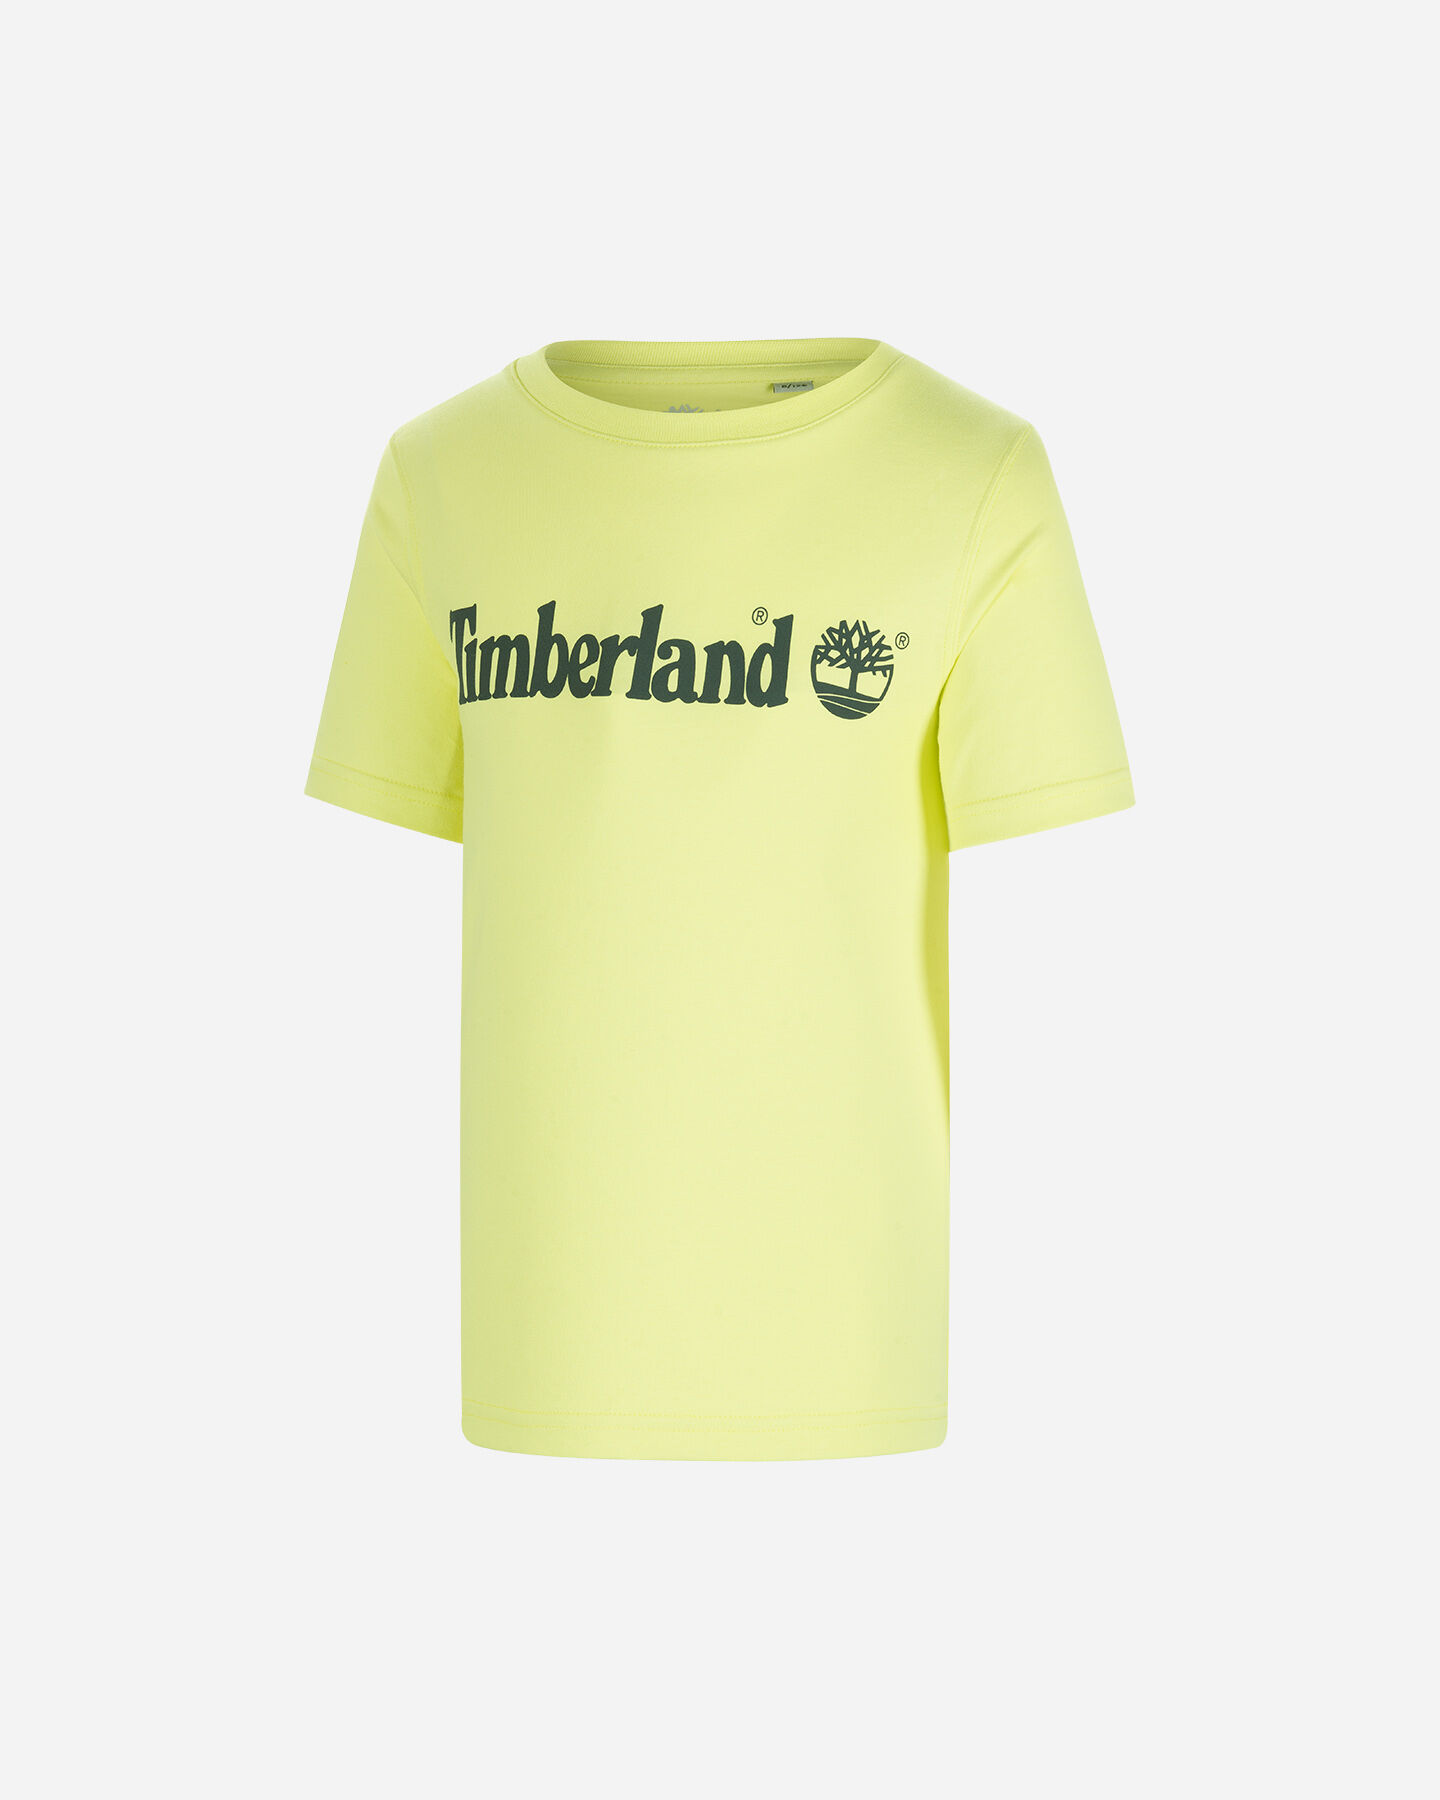 T-Shirt TIMBERLAND PLOGO EXTENDED JR S4088890 scatto 0